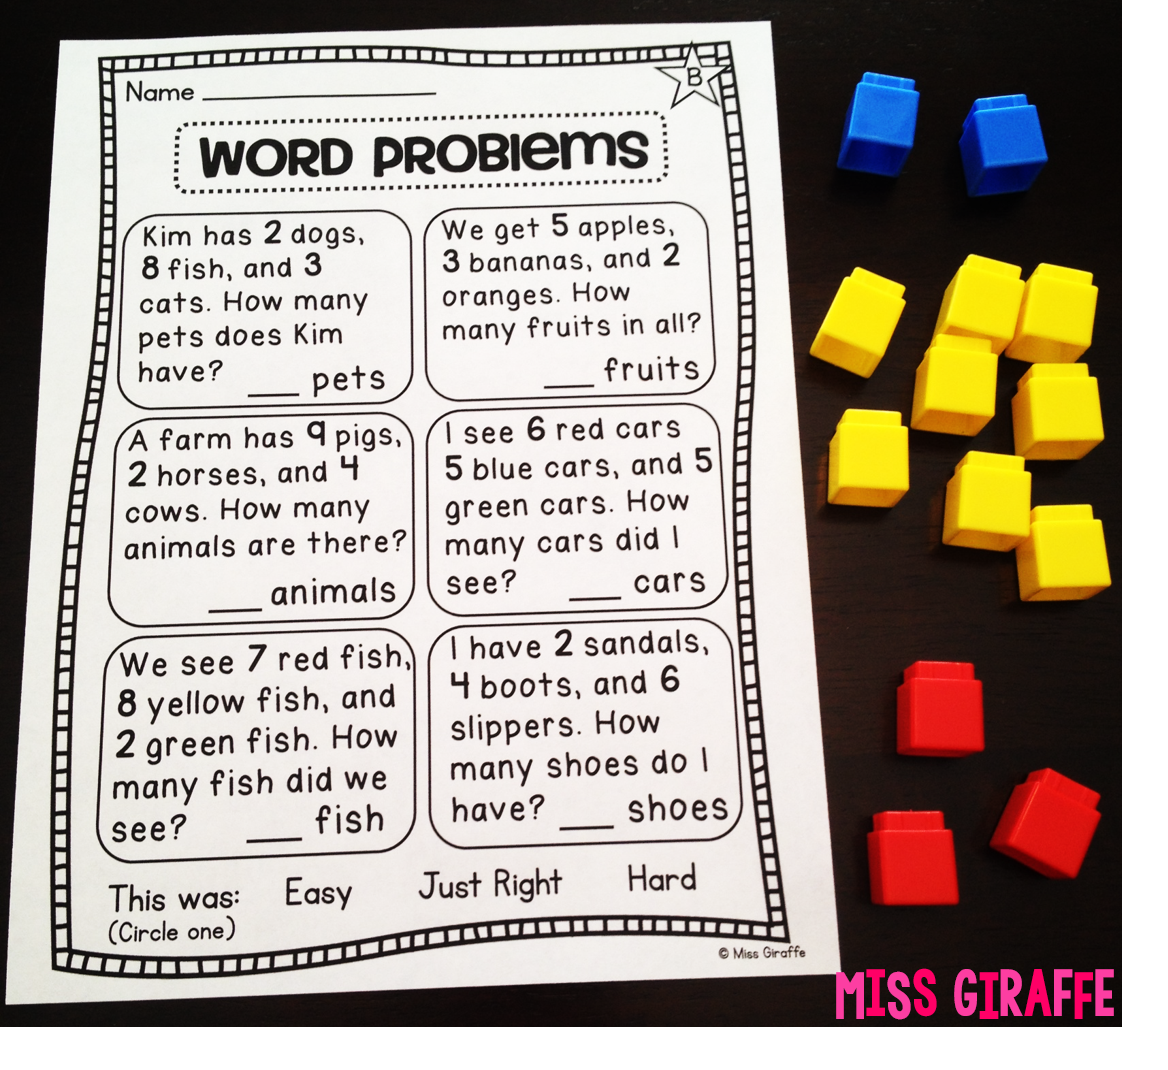 Worksheet Story Problems For First Grade simple addition word problems for first grade scalien miss giraffes class adding 3 numbers